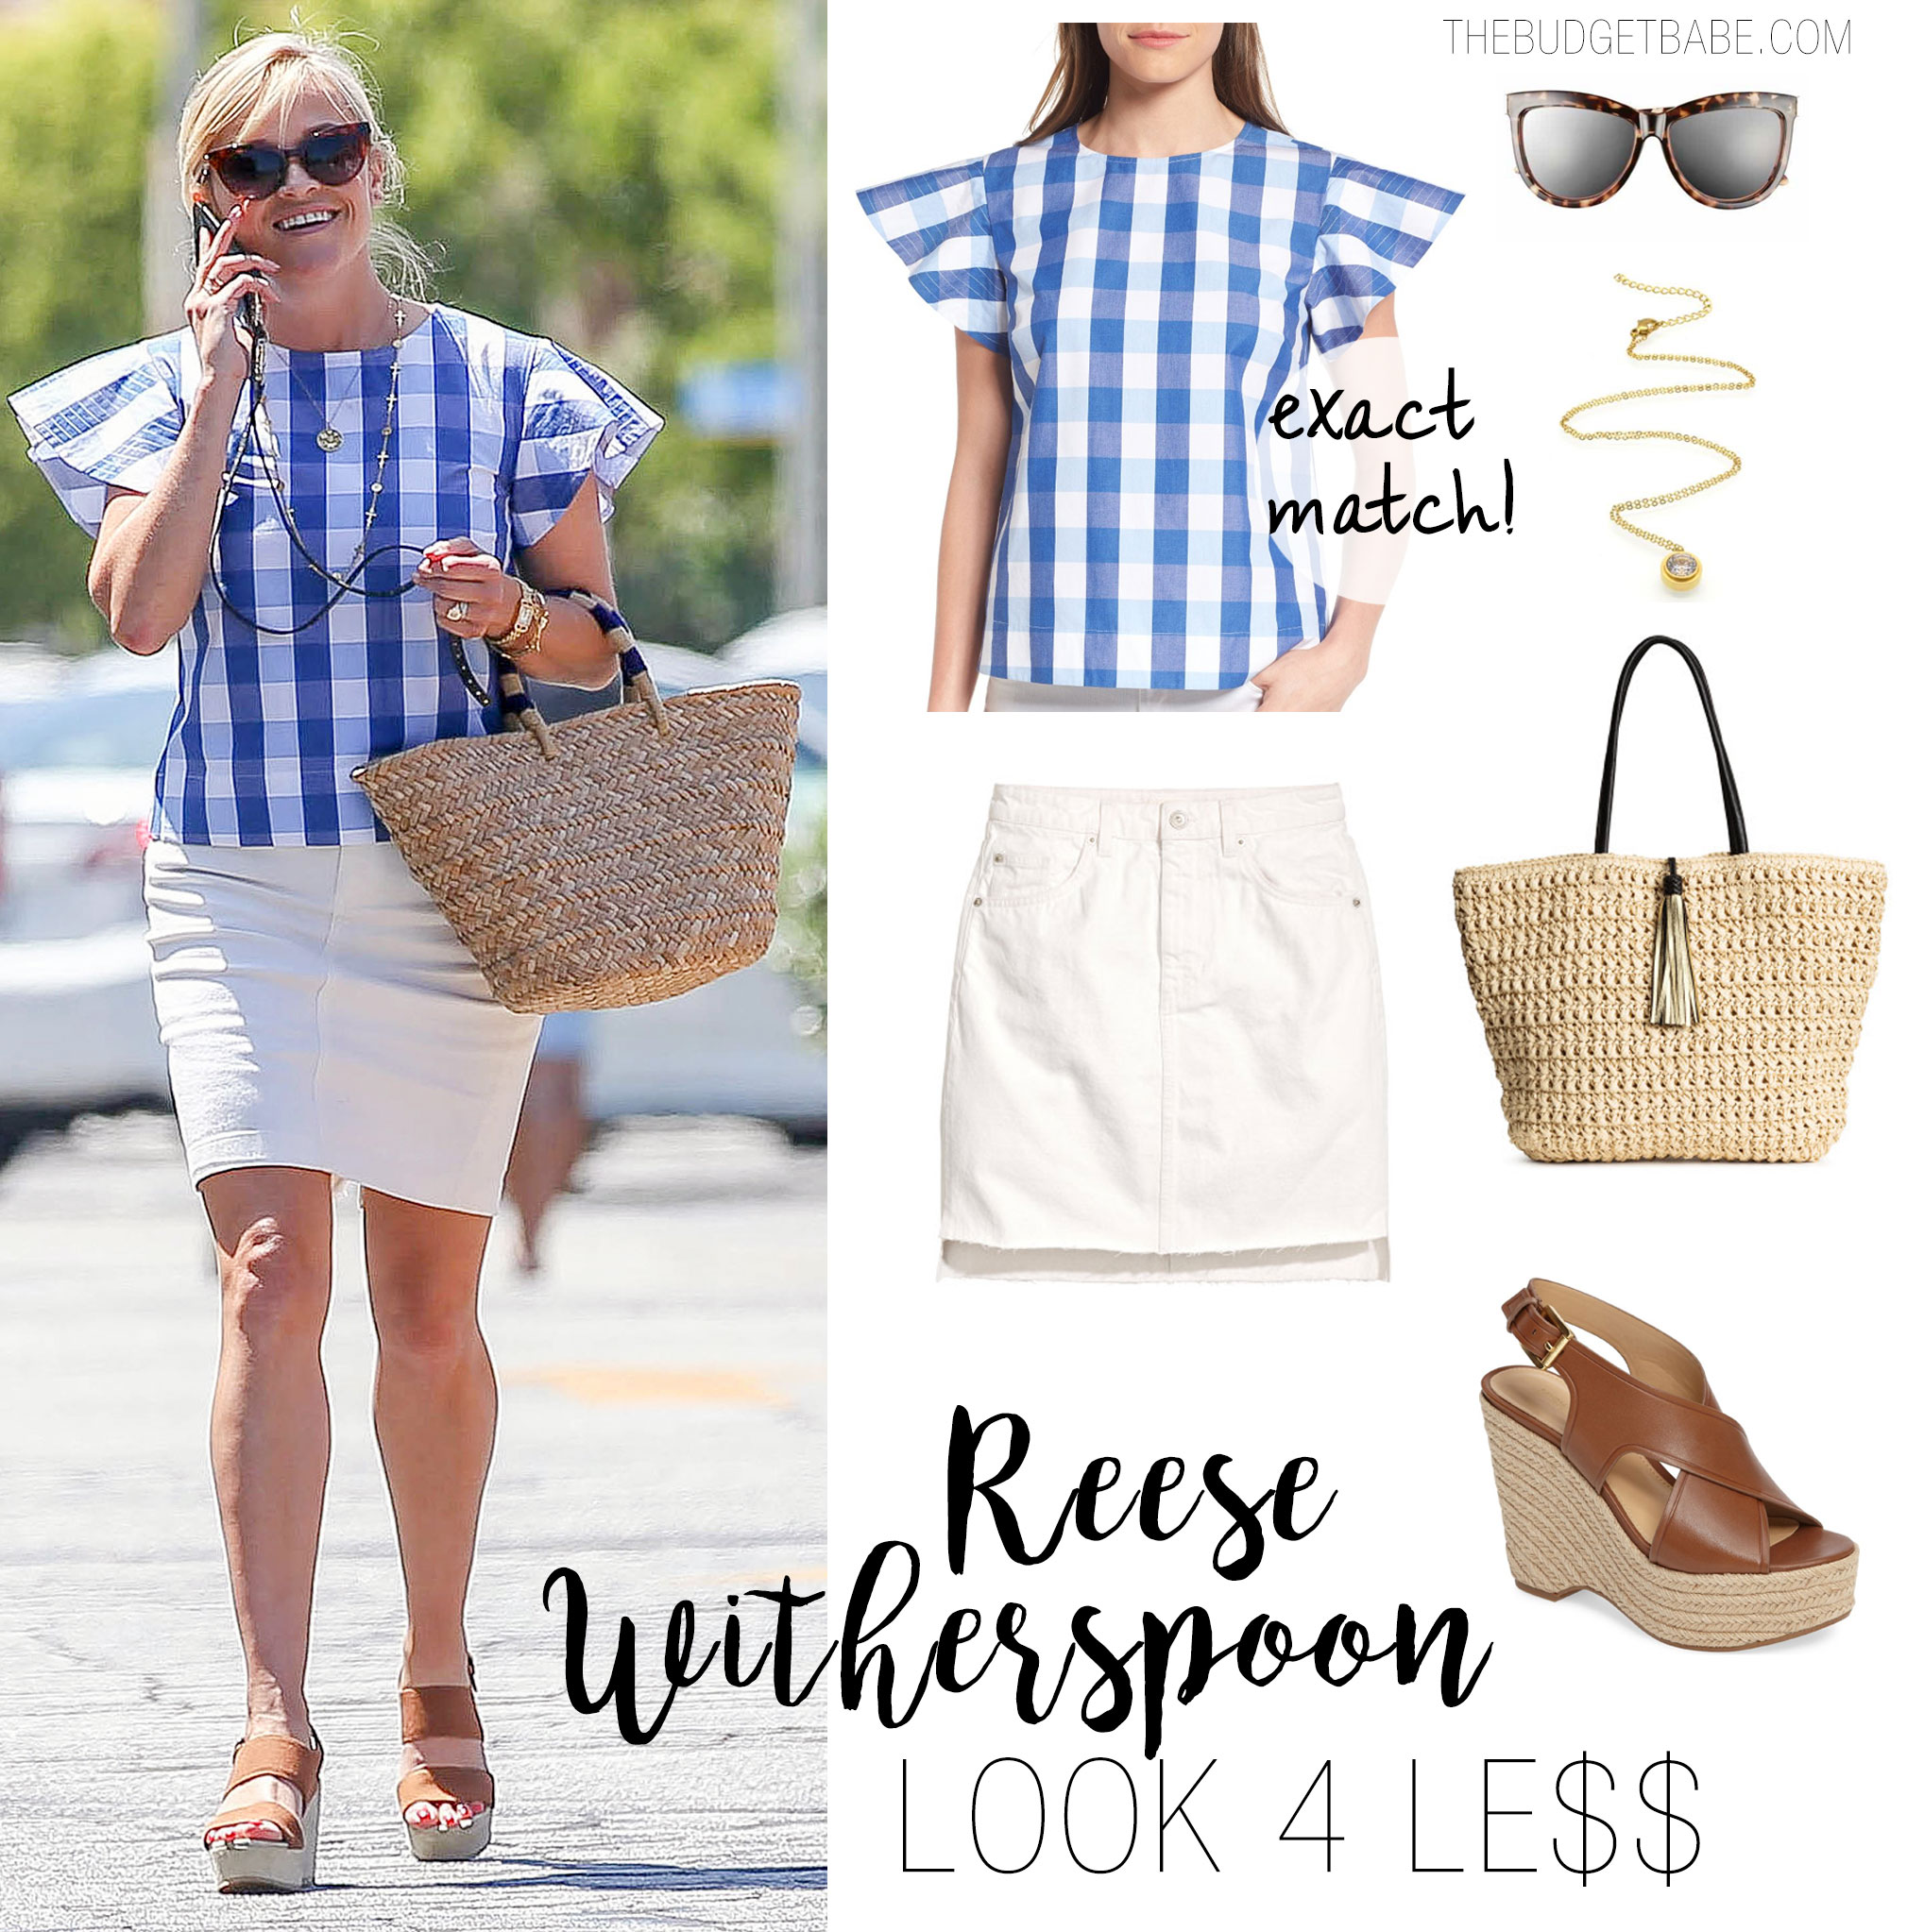 Reese Witherspoon Gingham Top and Off-White Skirt Look for Less